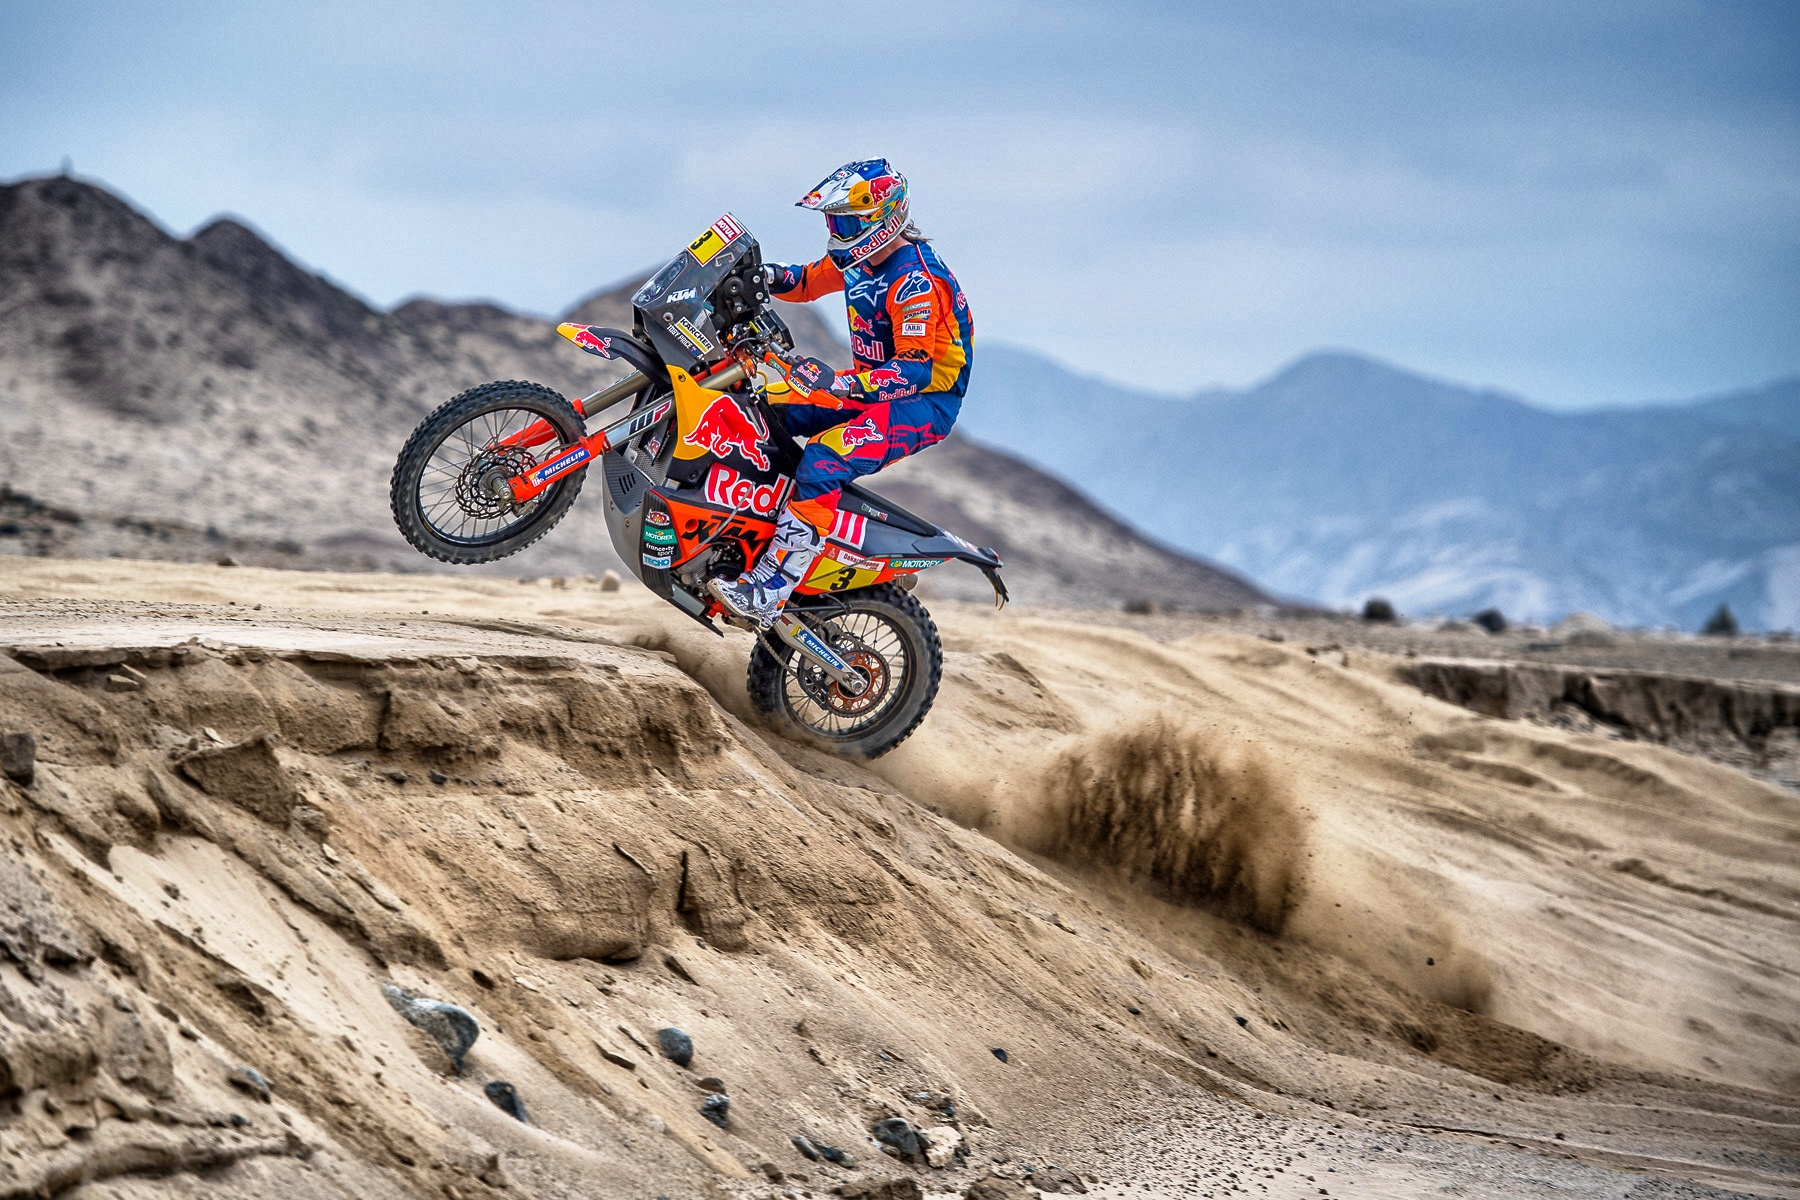 2019 Dakar: 18th straight win for KTM and Michelin